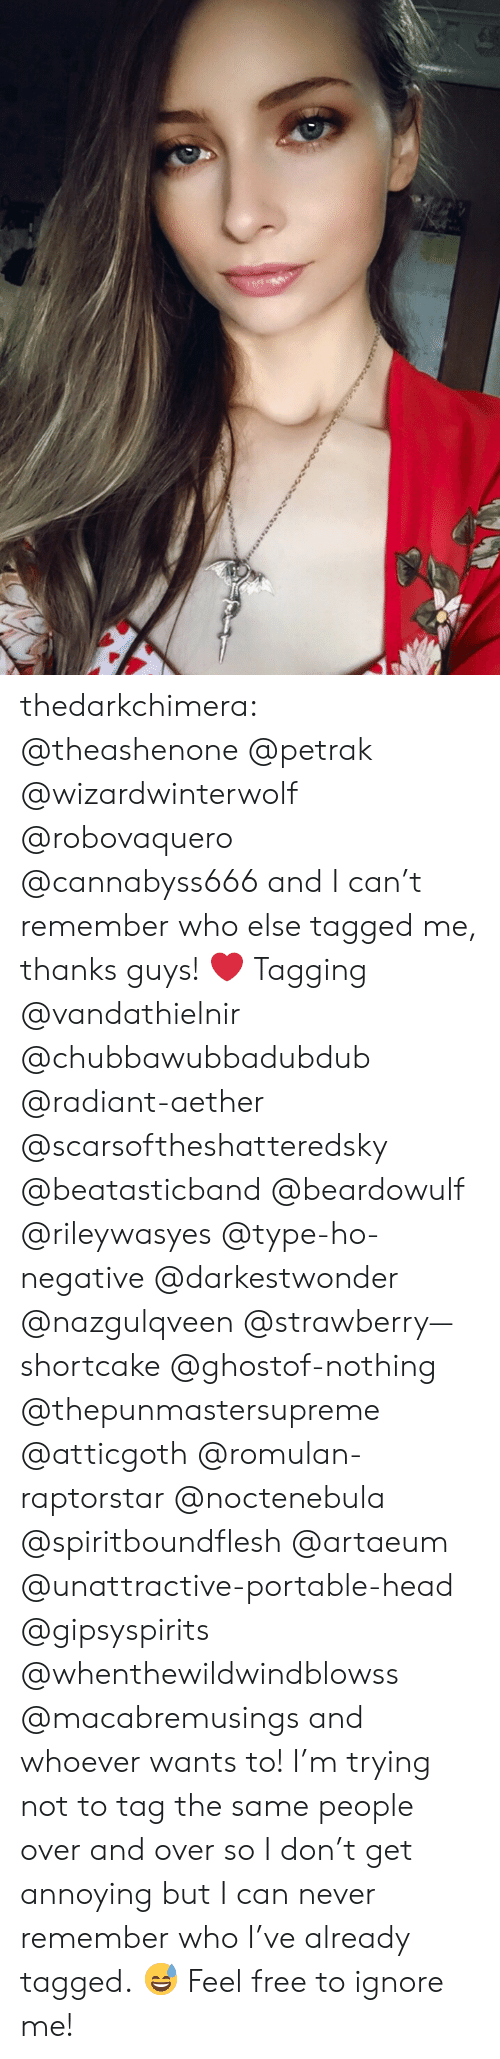 Tagging: thedarkchimera: @theashenone @petrak @wizardwinterwolf @robovaquero @cannabyss666 and I can't remember who else tagged me, thanks guys! ❤️  Tagging @vandathielnir @chubbawubbadubdub @radiant-aether @scarsoftheshatteredsky @beatasticband @beardowulf @rileywasyes @type-ho-negative @darkestwonder @nazgulqveen @strawberry—shortcake @ghostof-nothing @thepunmastersupreme @atticgoth @romulan-raptorstar @noctenebula @spiritboundflesh @artaeum @unattractive-portable-head @gipsyspirits @whenthewildwindblowss @macabremusings and whoever wants to! I'm trying not to tag the same people over and over so I don't get annoying but I can never remember who I've already tagged. 😅 Feel free to ignore me!